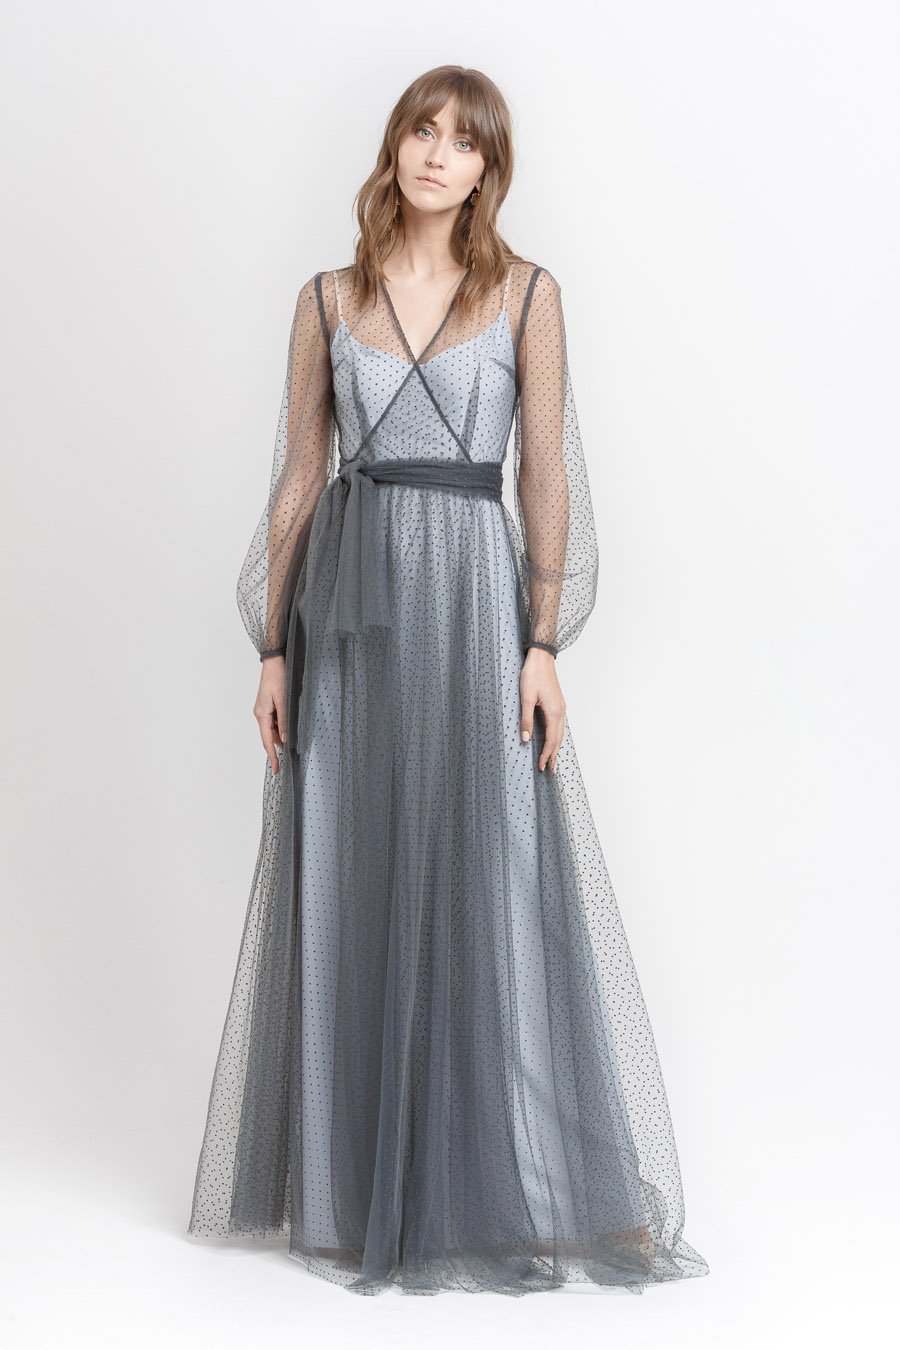 Bridesmaid ideas for 2019 grey coral unique unusual - Katya Katya London (4)